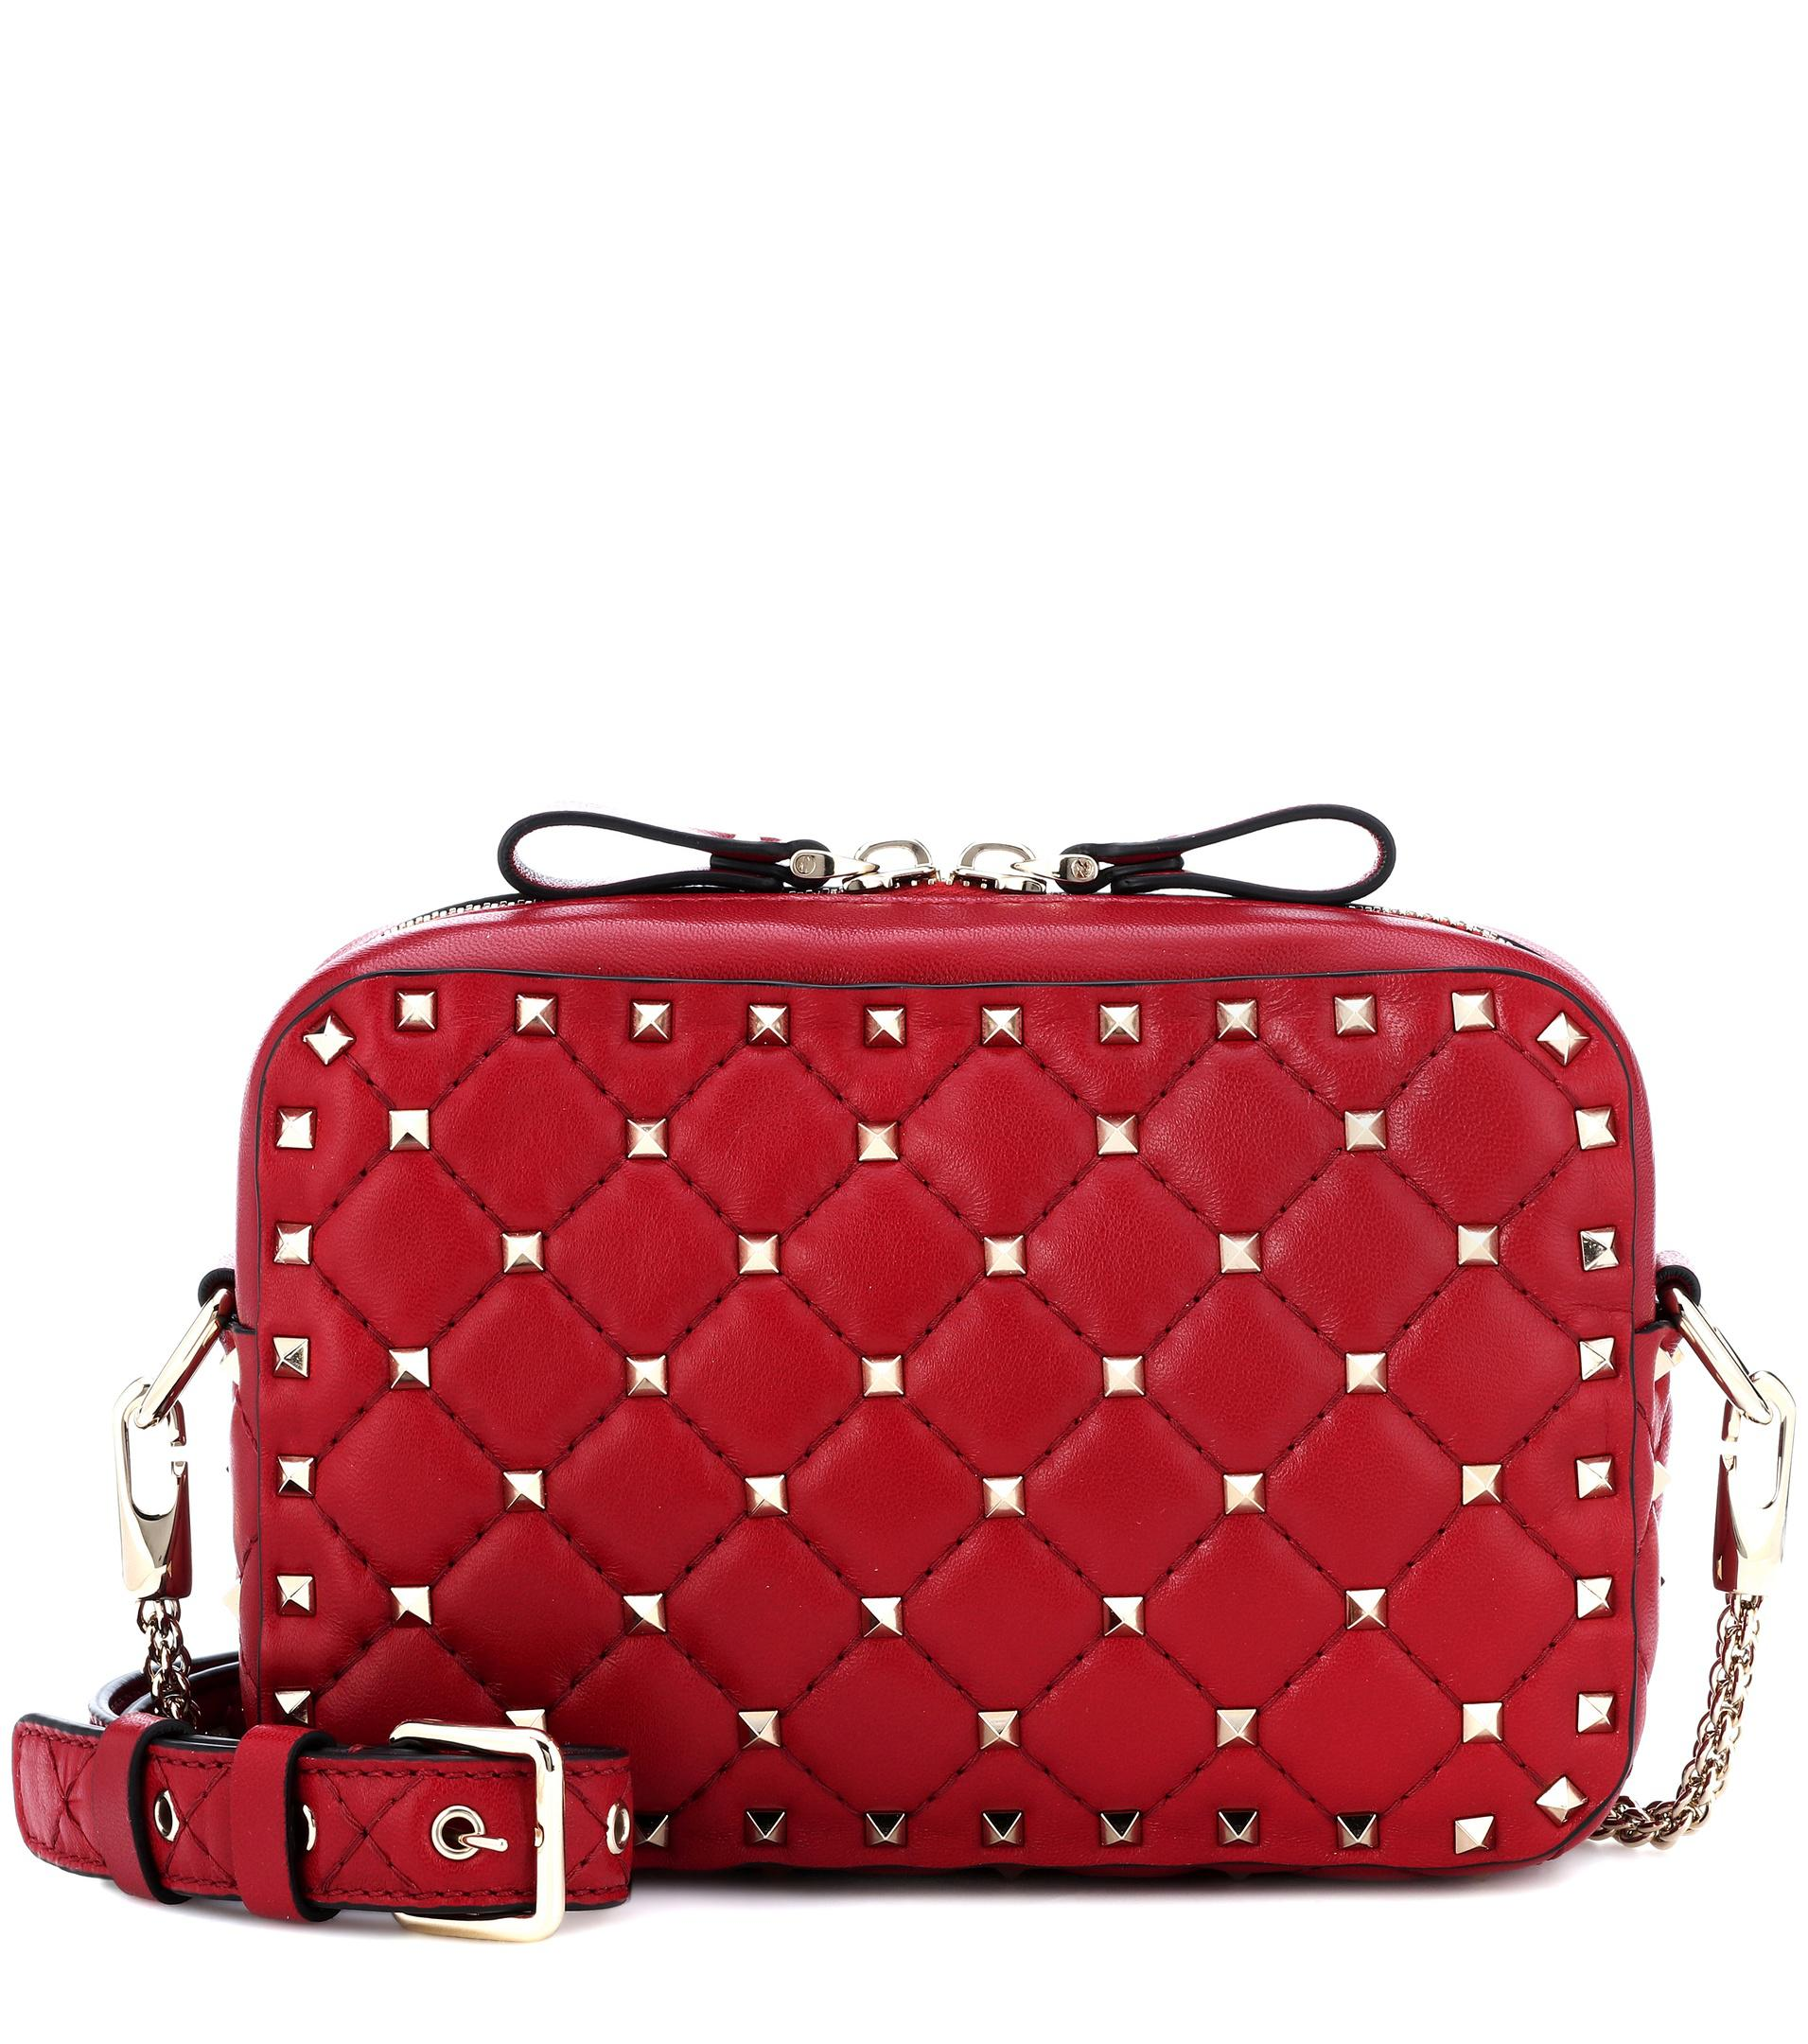 Valentino Red Rockstud Spike Leather Cross Body Bag Cheap Marketable Free Shipping Order O5uXKpKEHj